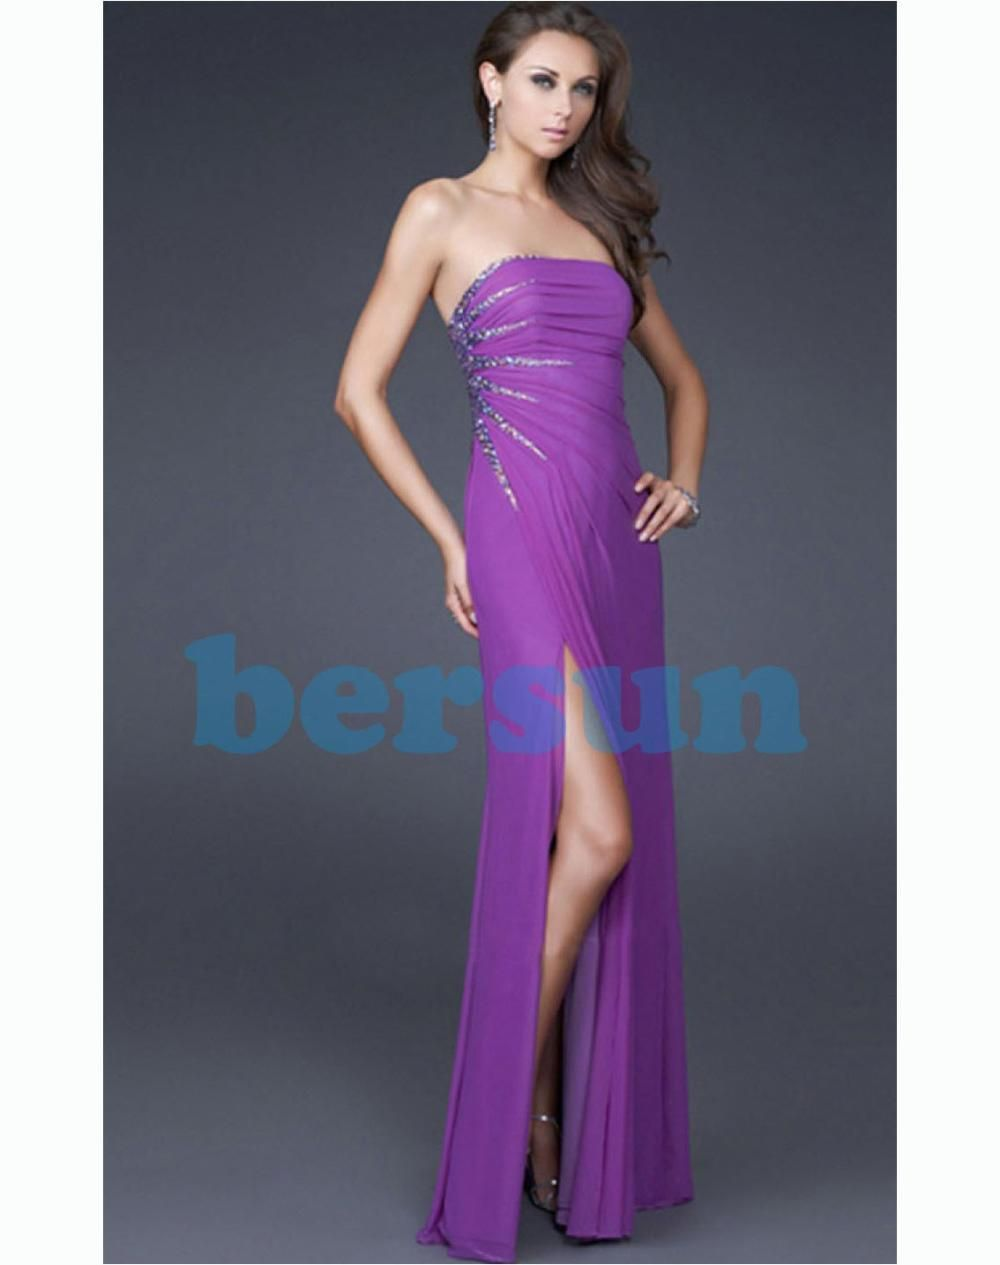 Bersun Abendkleider Slit Style Dress Purple A-Line Long Strapless Dress Formal Dress vestidos de festa Designers Free Shipping